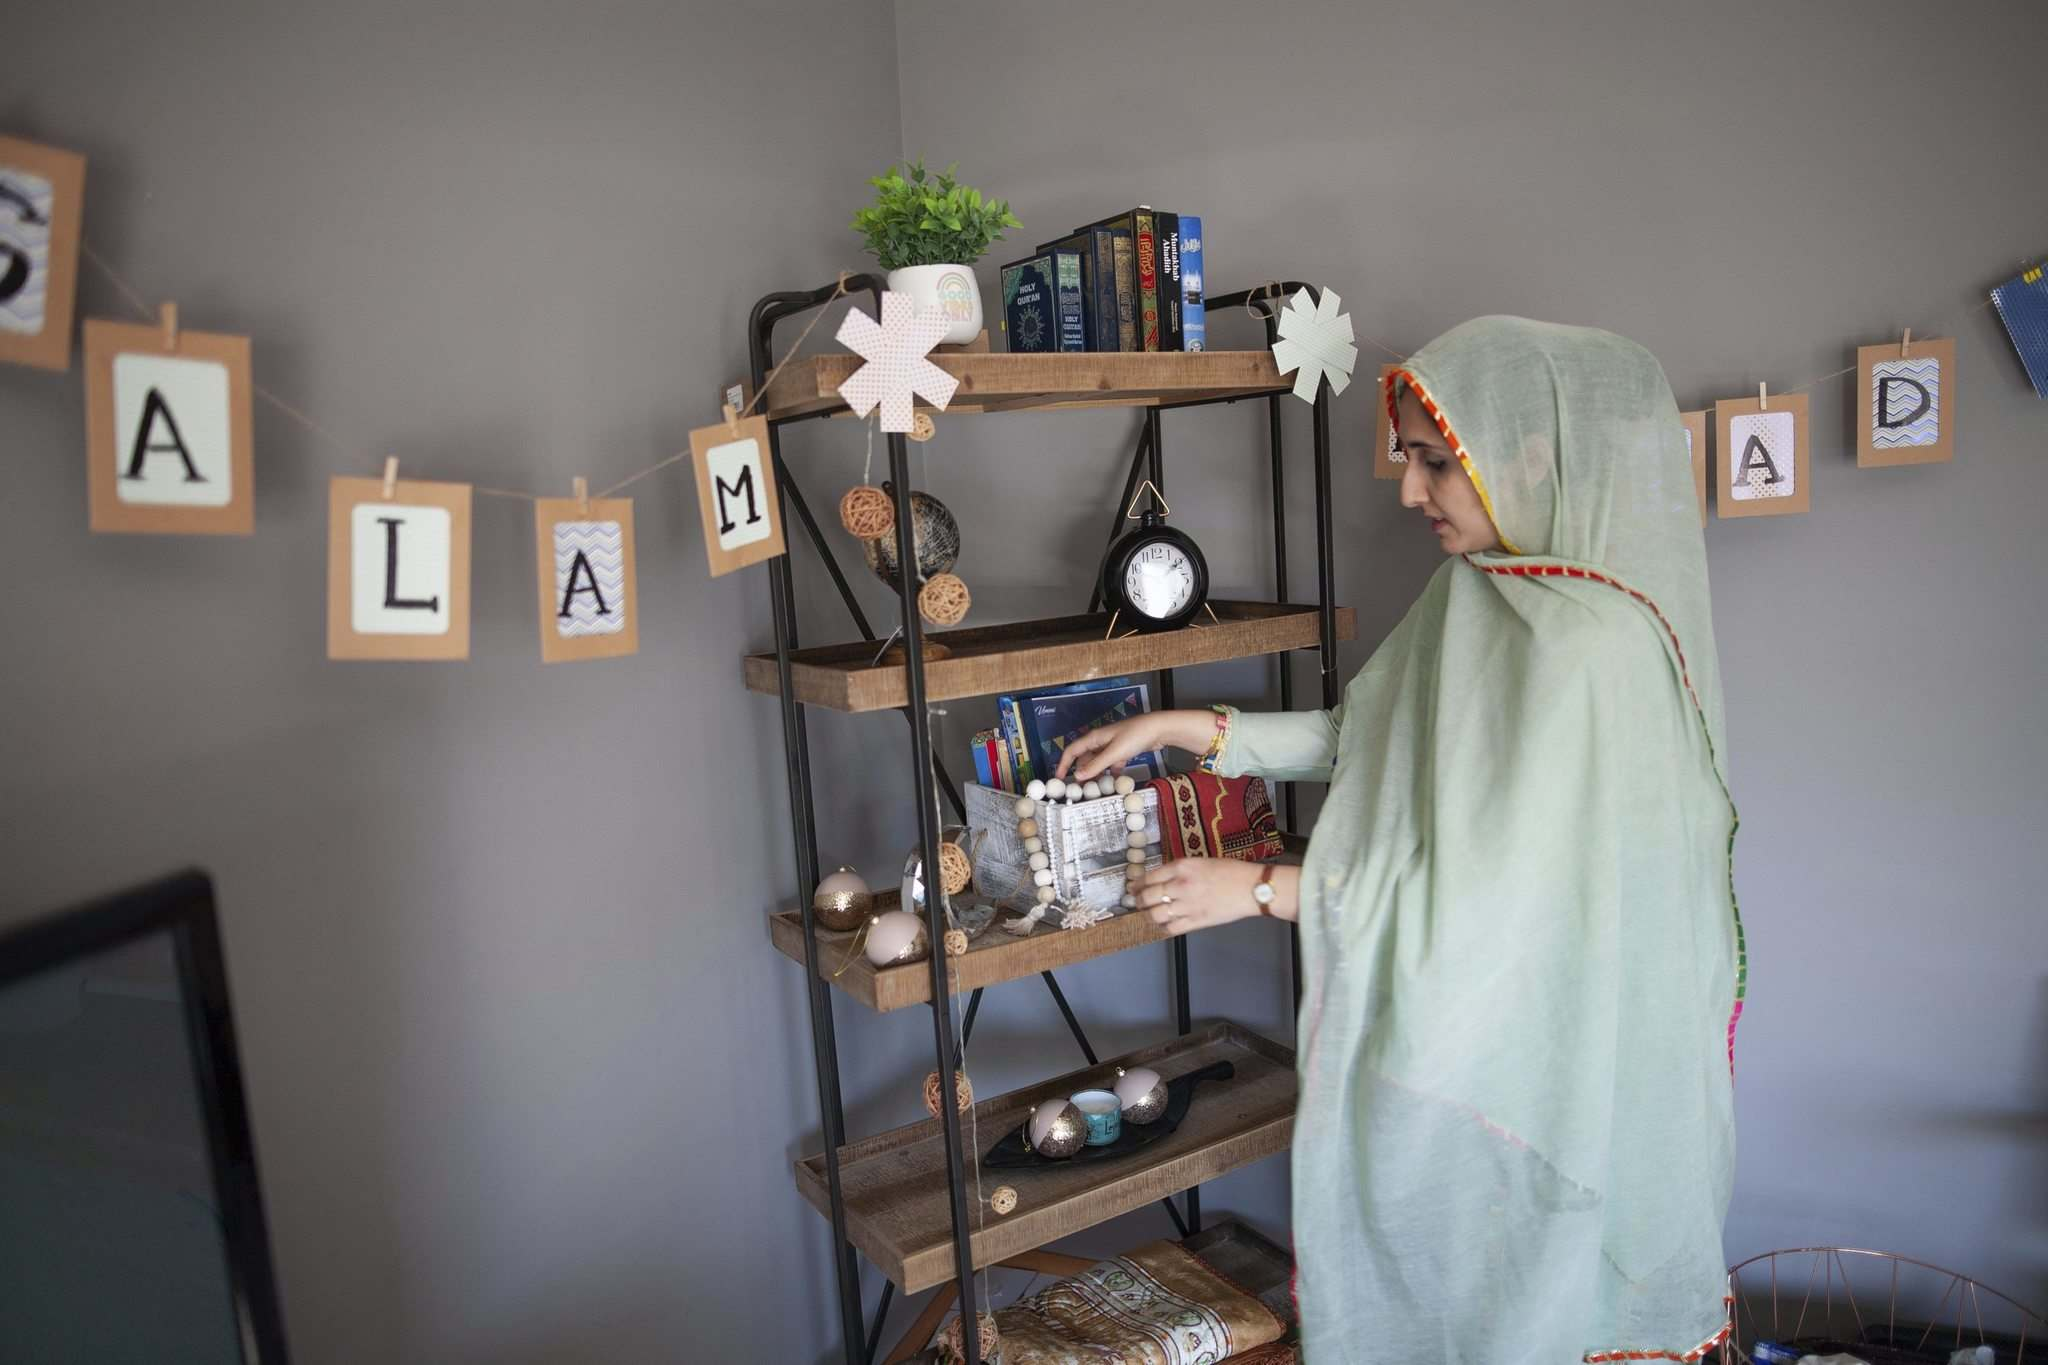 Waleed adjusts the ramadan corner her family setup in their home.